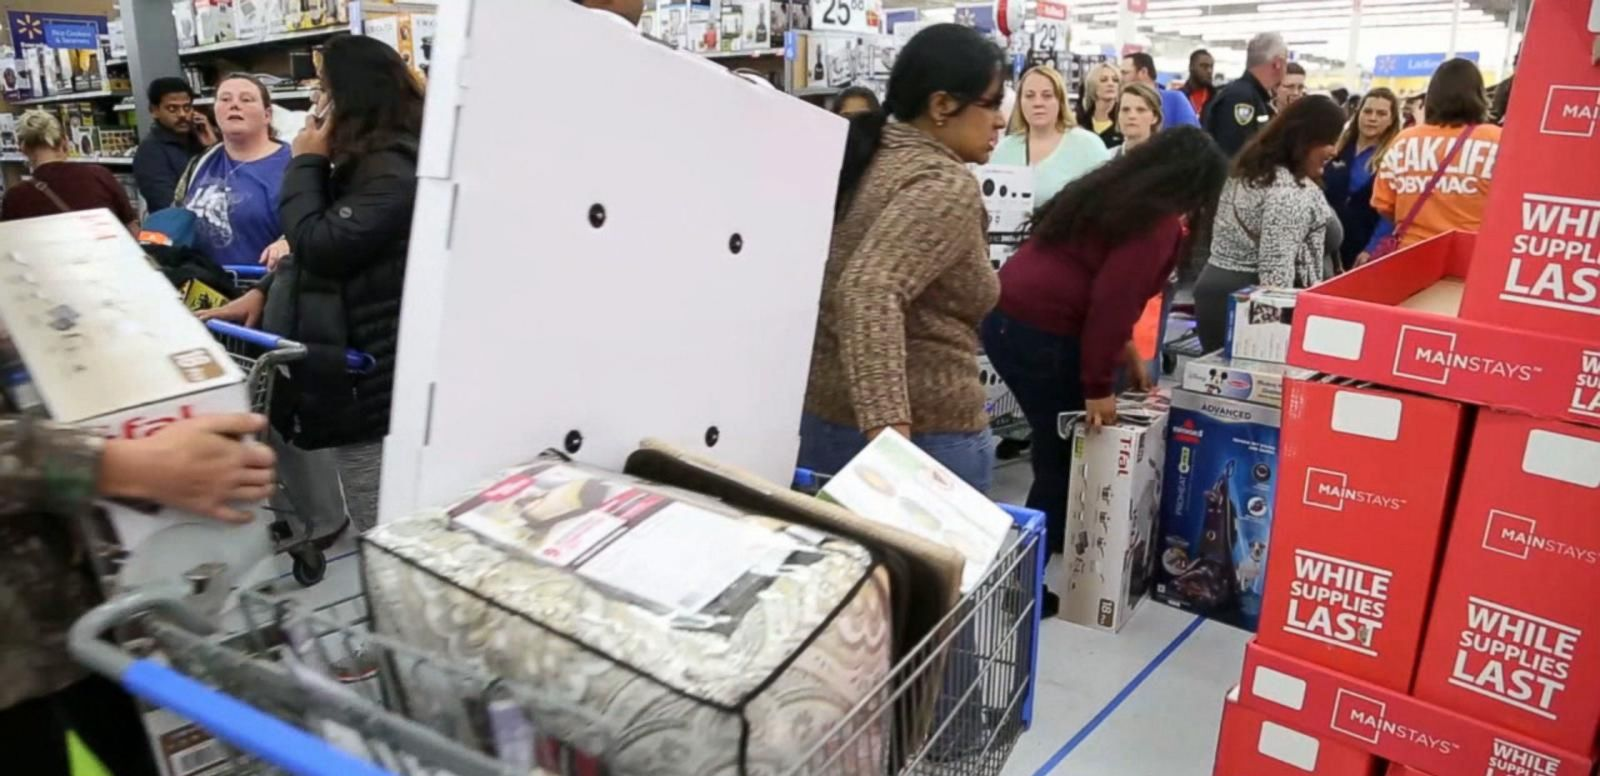 VIDEO: Black Friday Coming to an End?